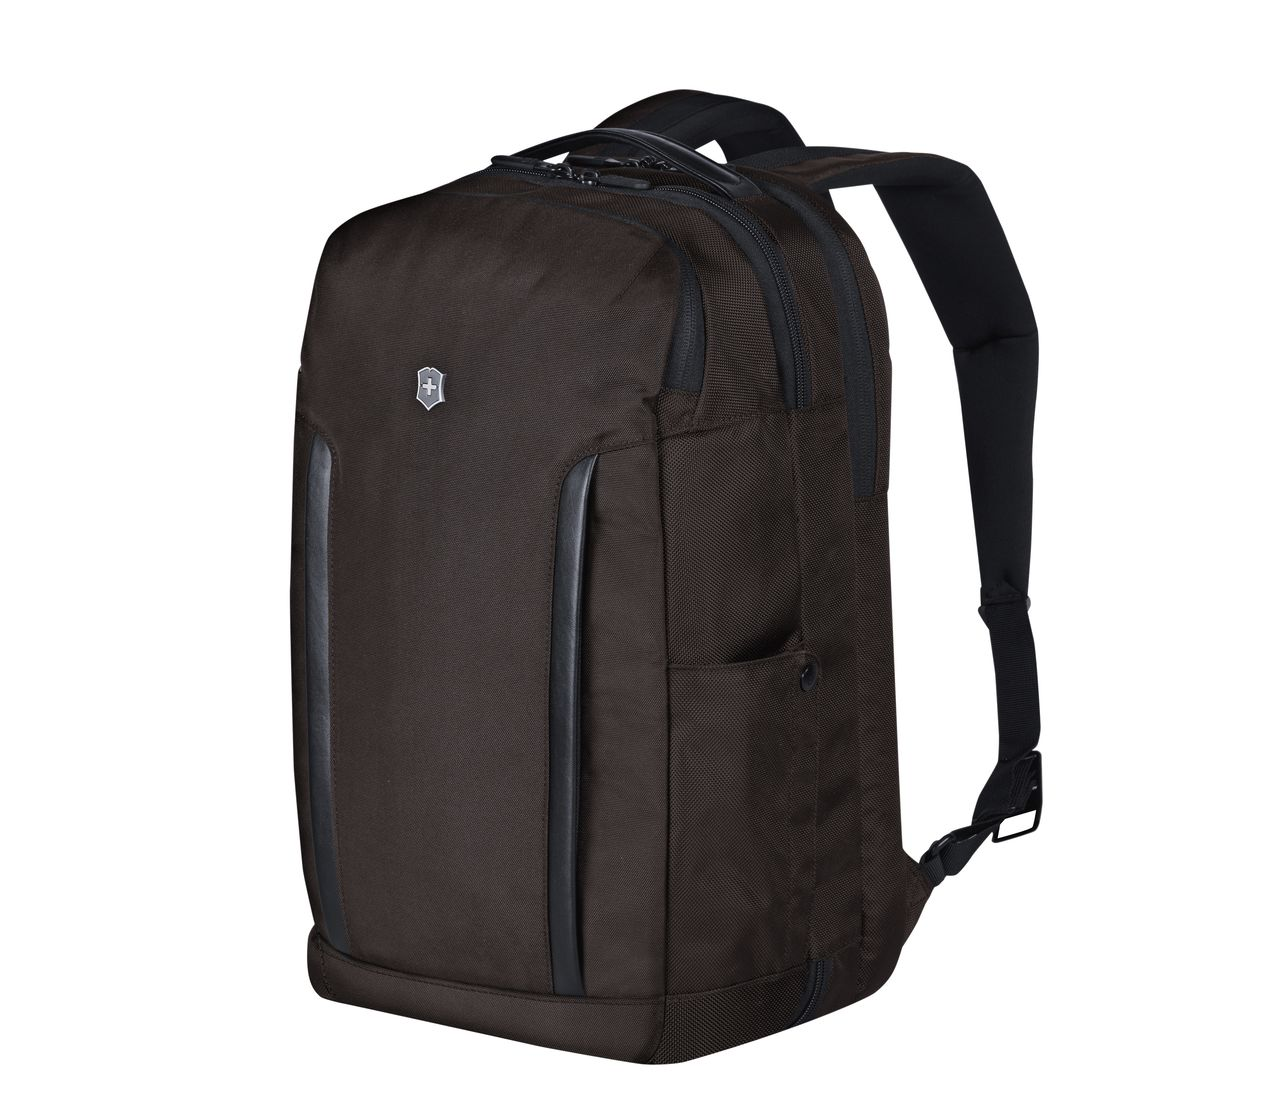 Deluxe Travel Laptop Backpack-605307